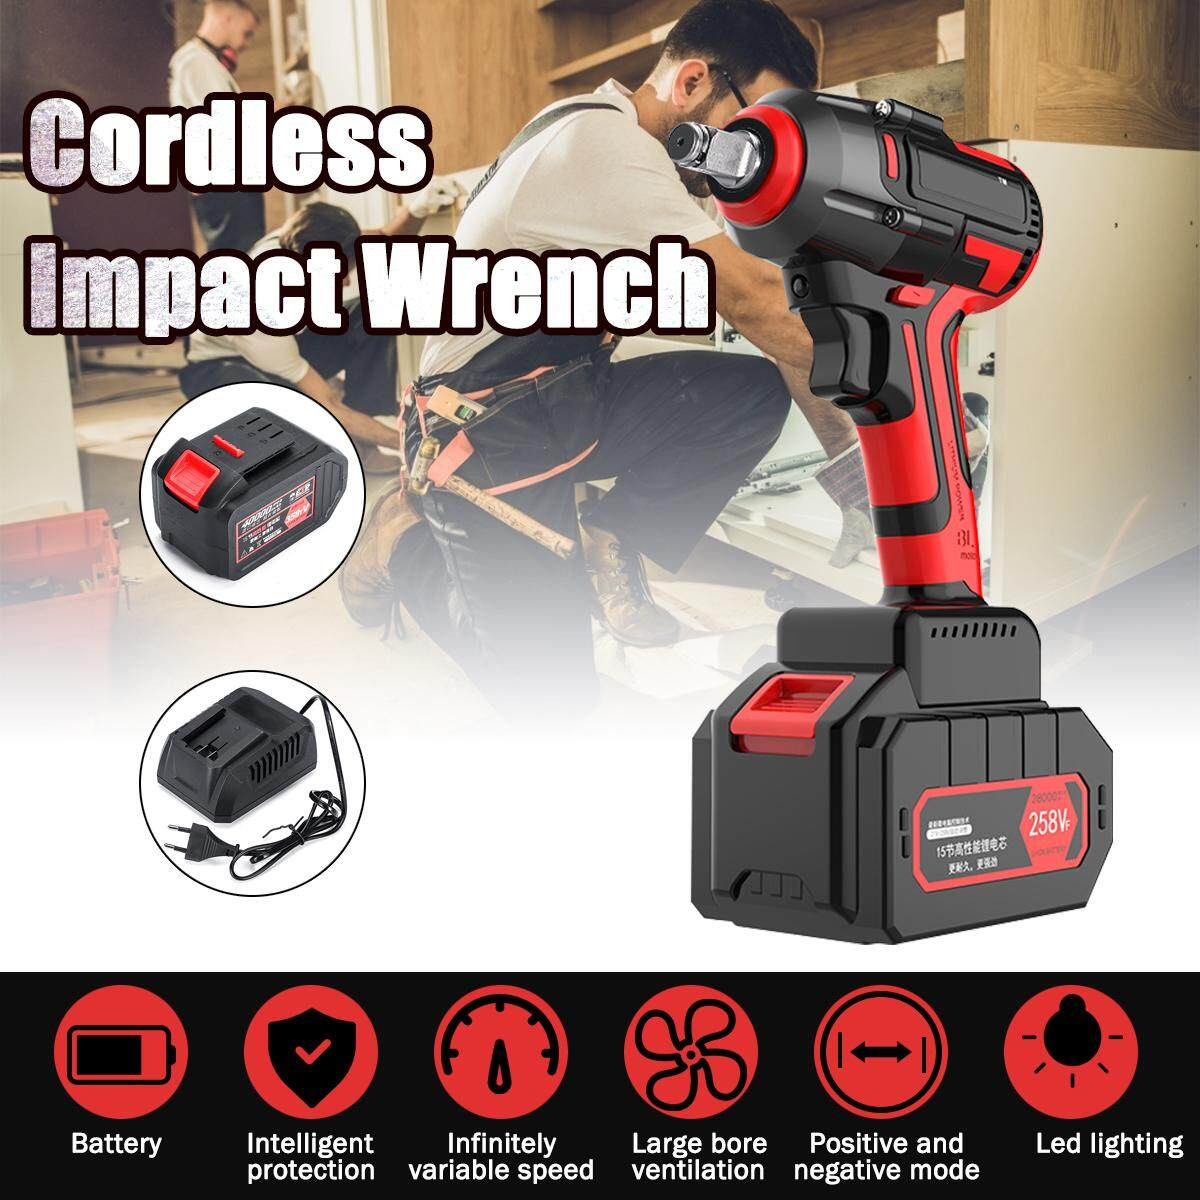 40000mAh【 358tV 】Electric Cordless 1/2  680Nm Impact Brushless Wrench Torque Drill【EU Plug】